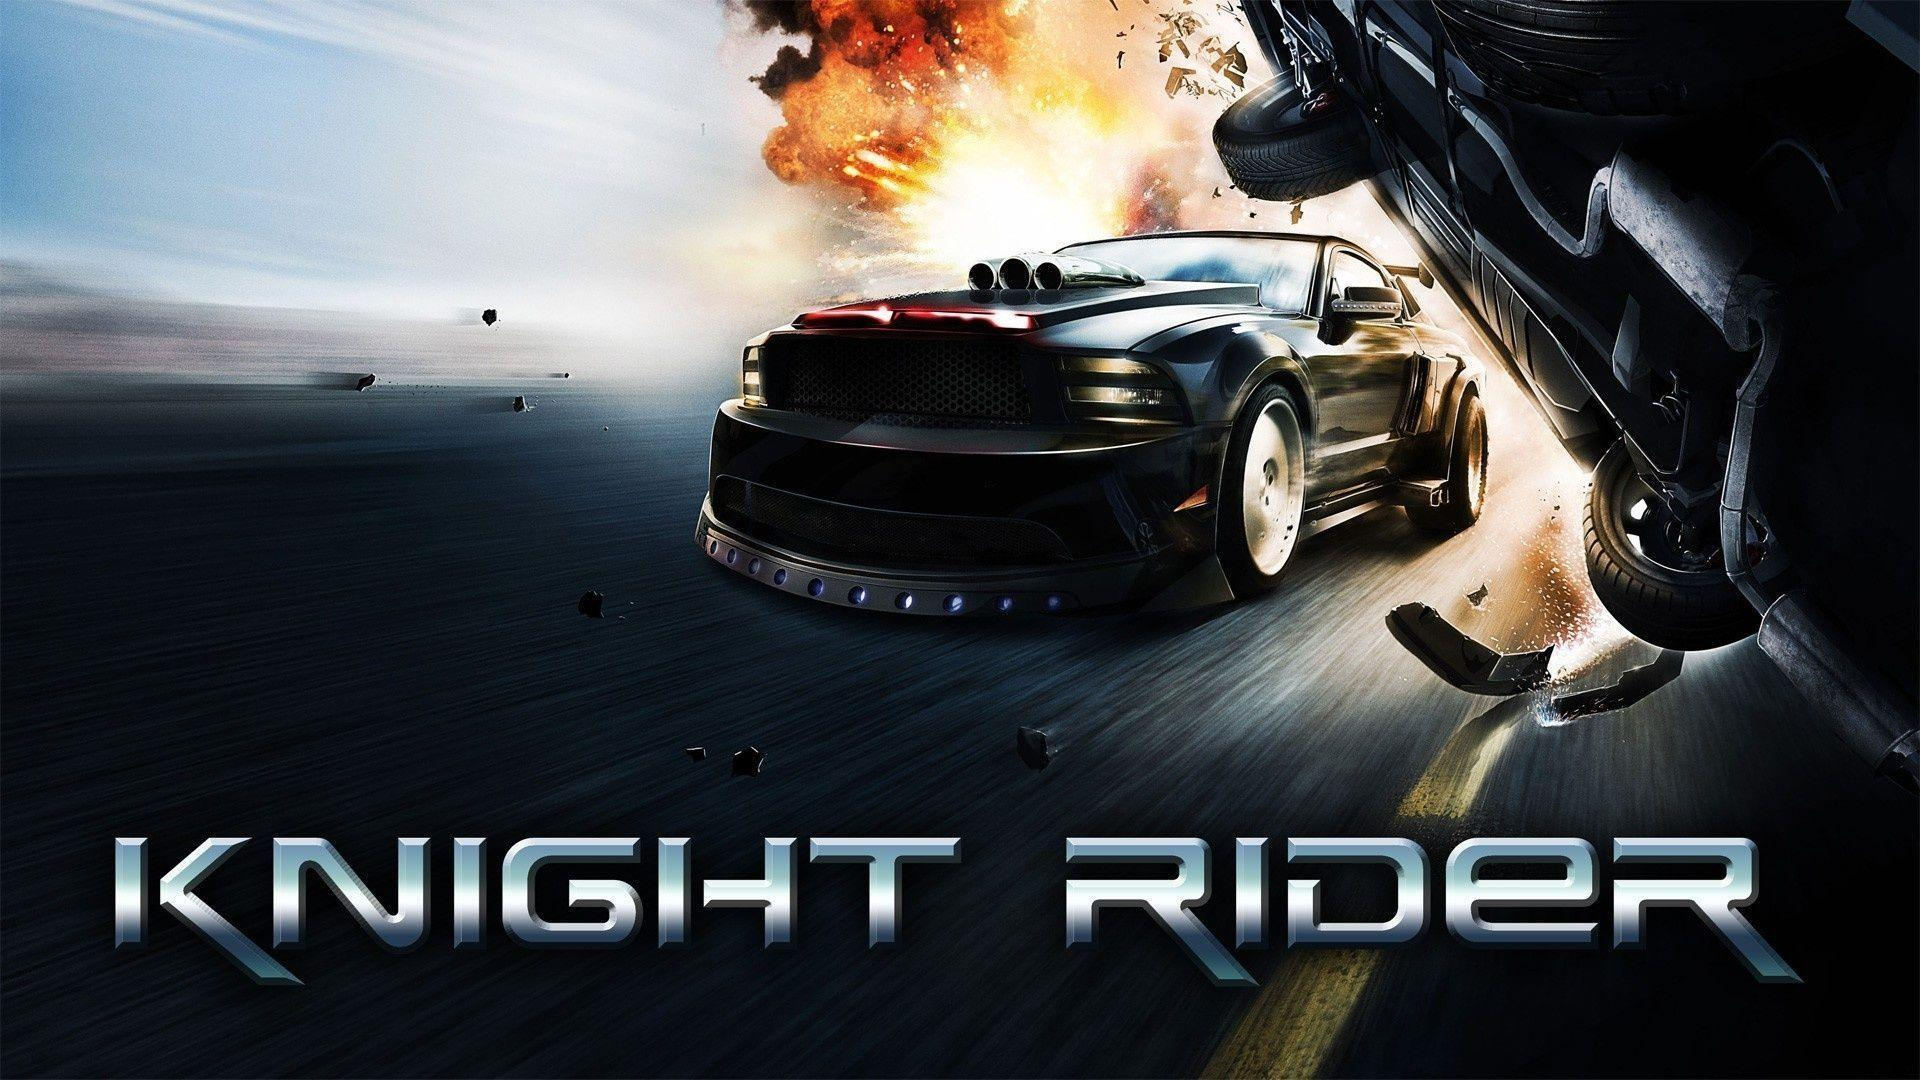 Knight Rider Car Wallpapers 1920x1080